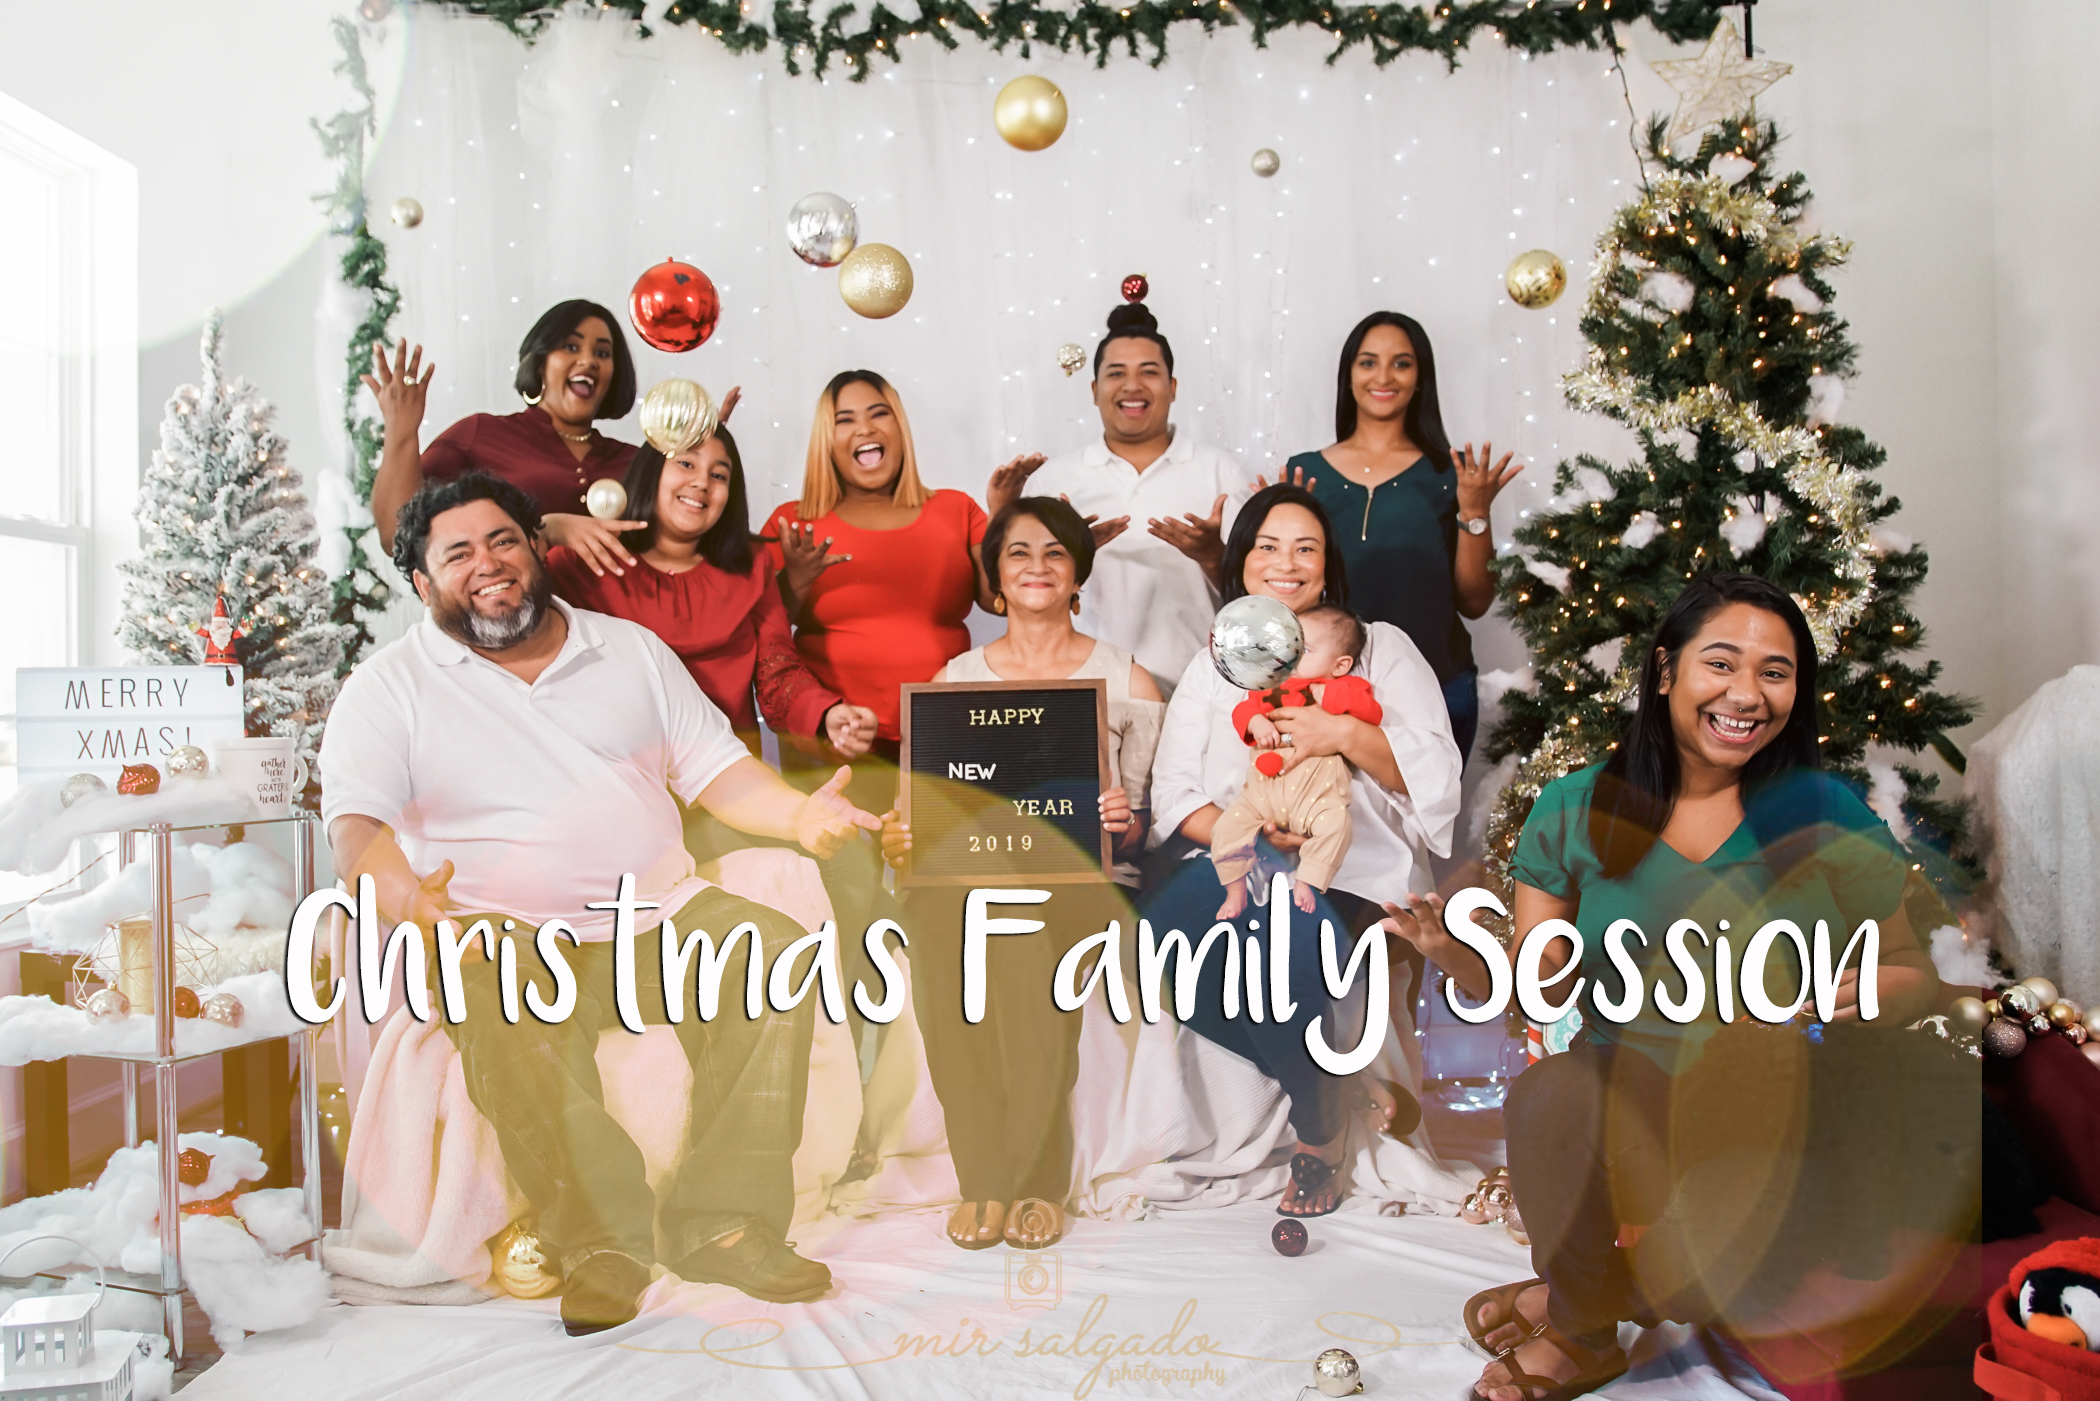 tampa-christmas-family-session, tampa-family-photographer, tampa-photographer, animal-friendly-tampa-photographer